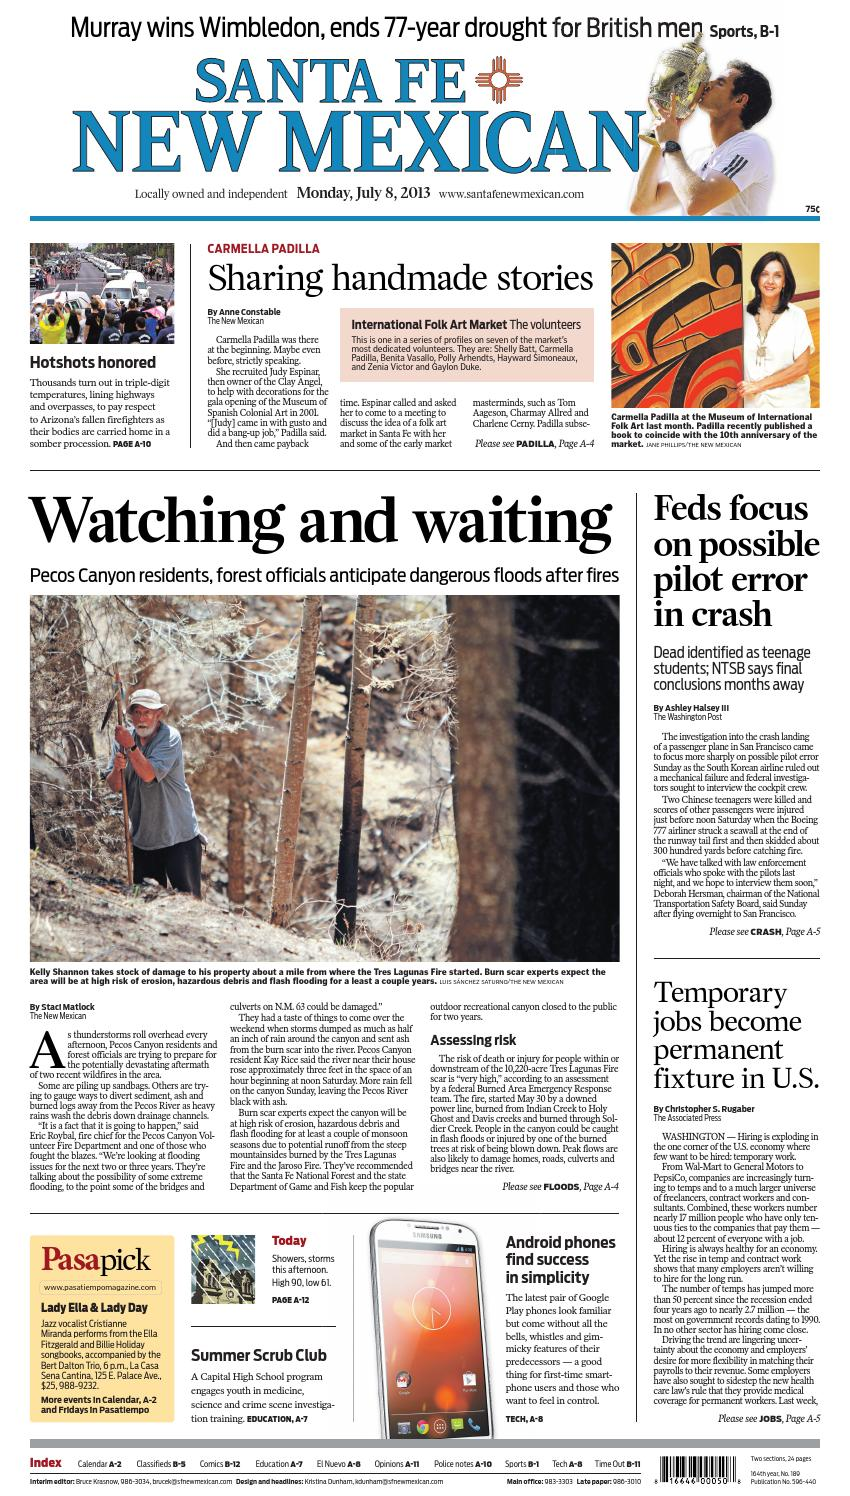 Santa Fe New Mexican, July 8, 2013 by The New Mexican - issuu